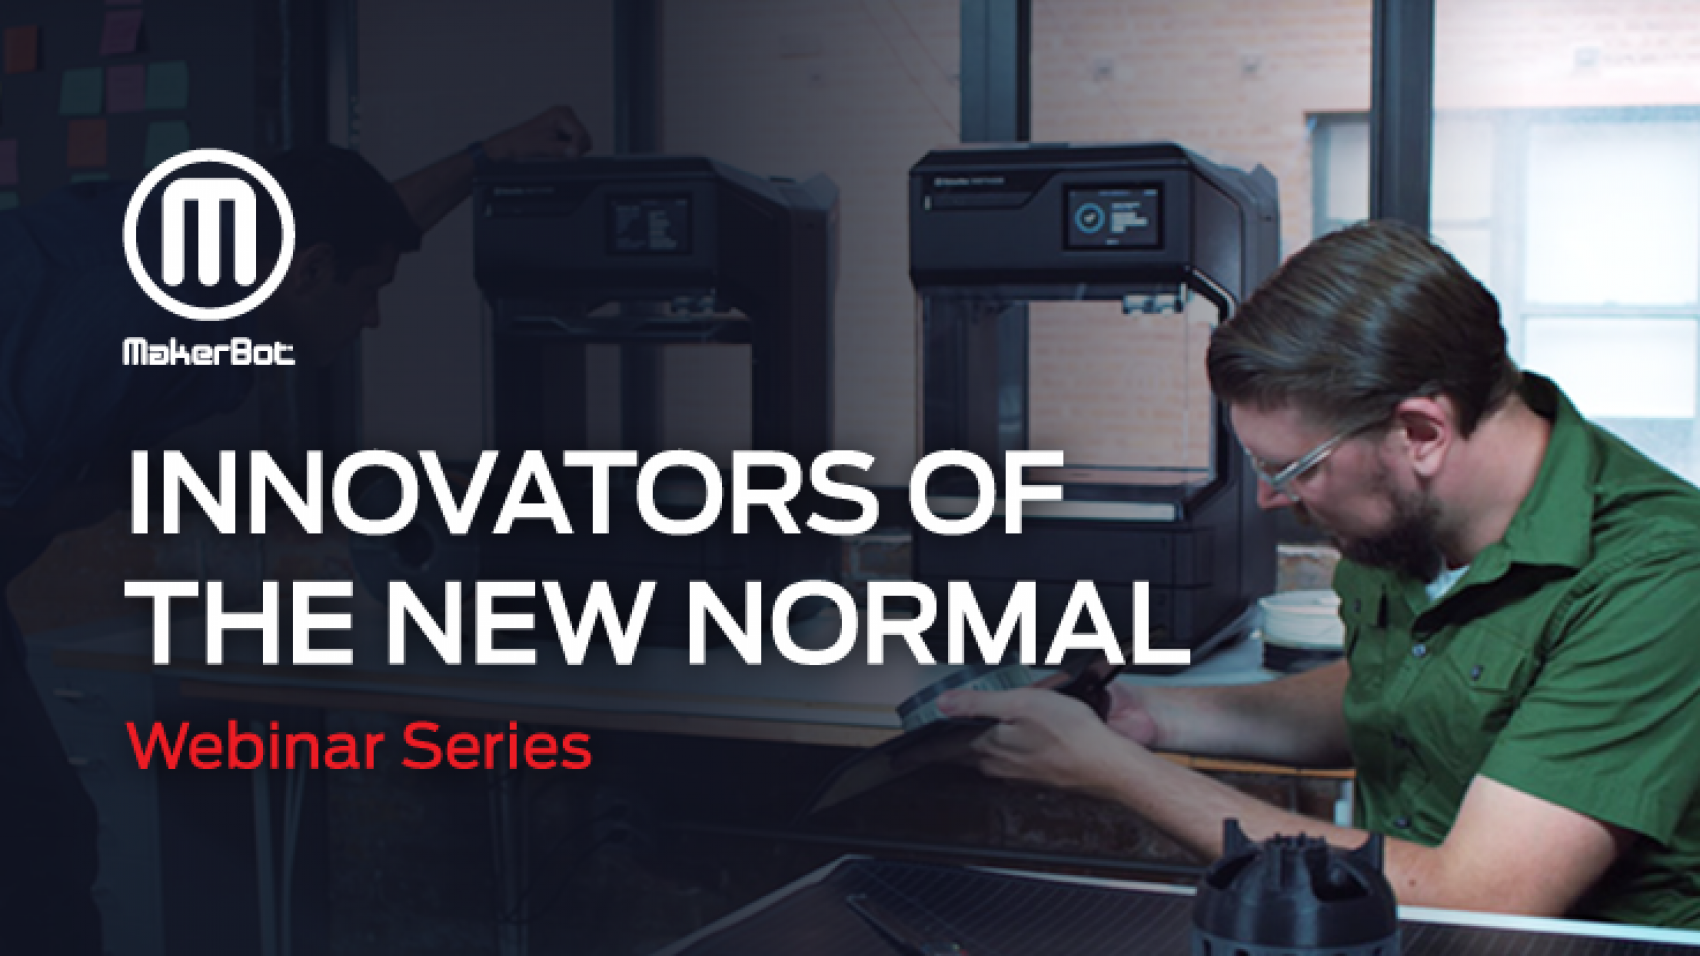 MakerBot-Innovators-of-the-New-Normal-Header-Image